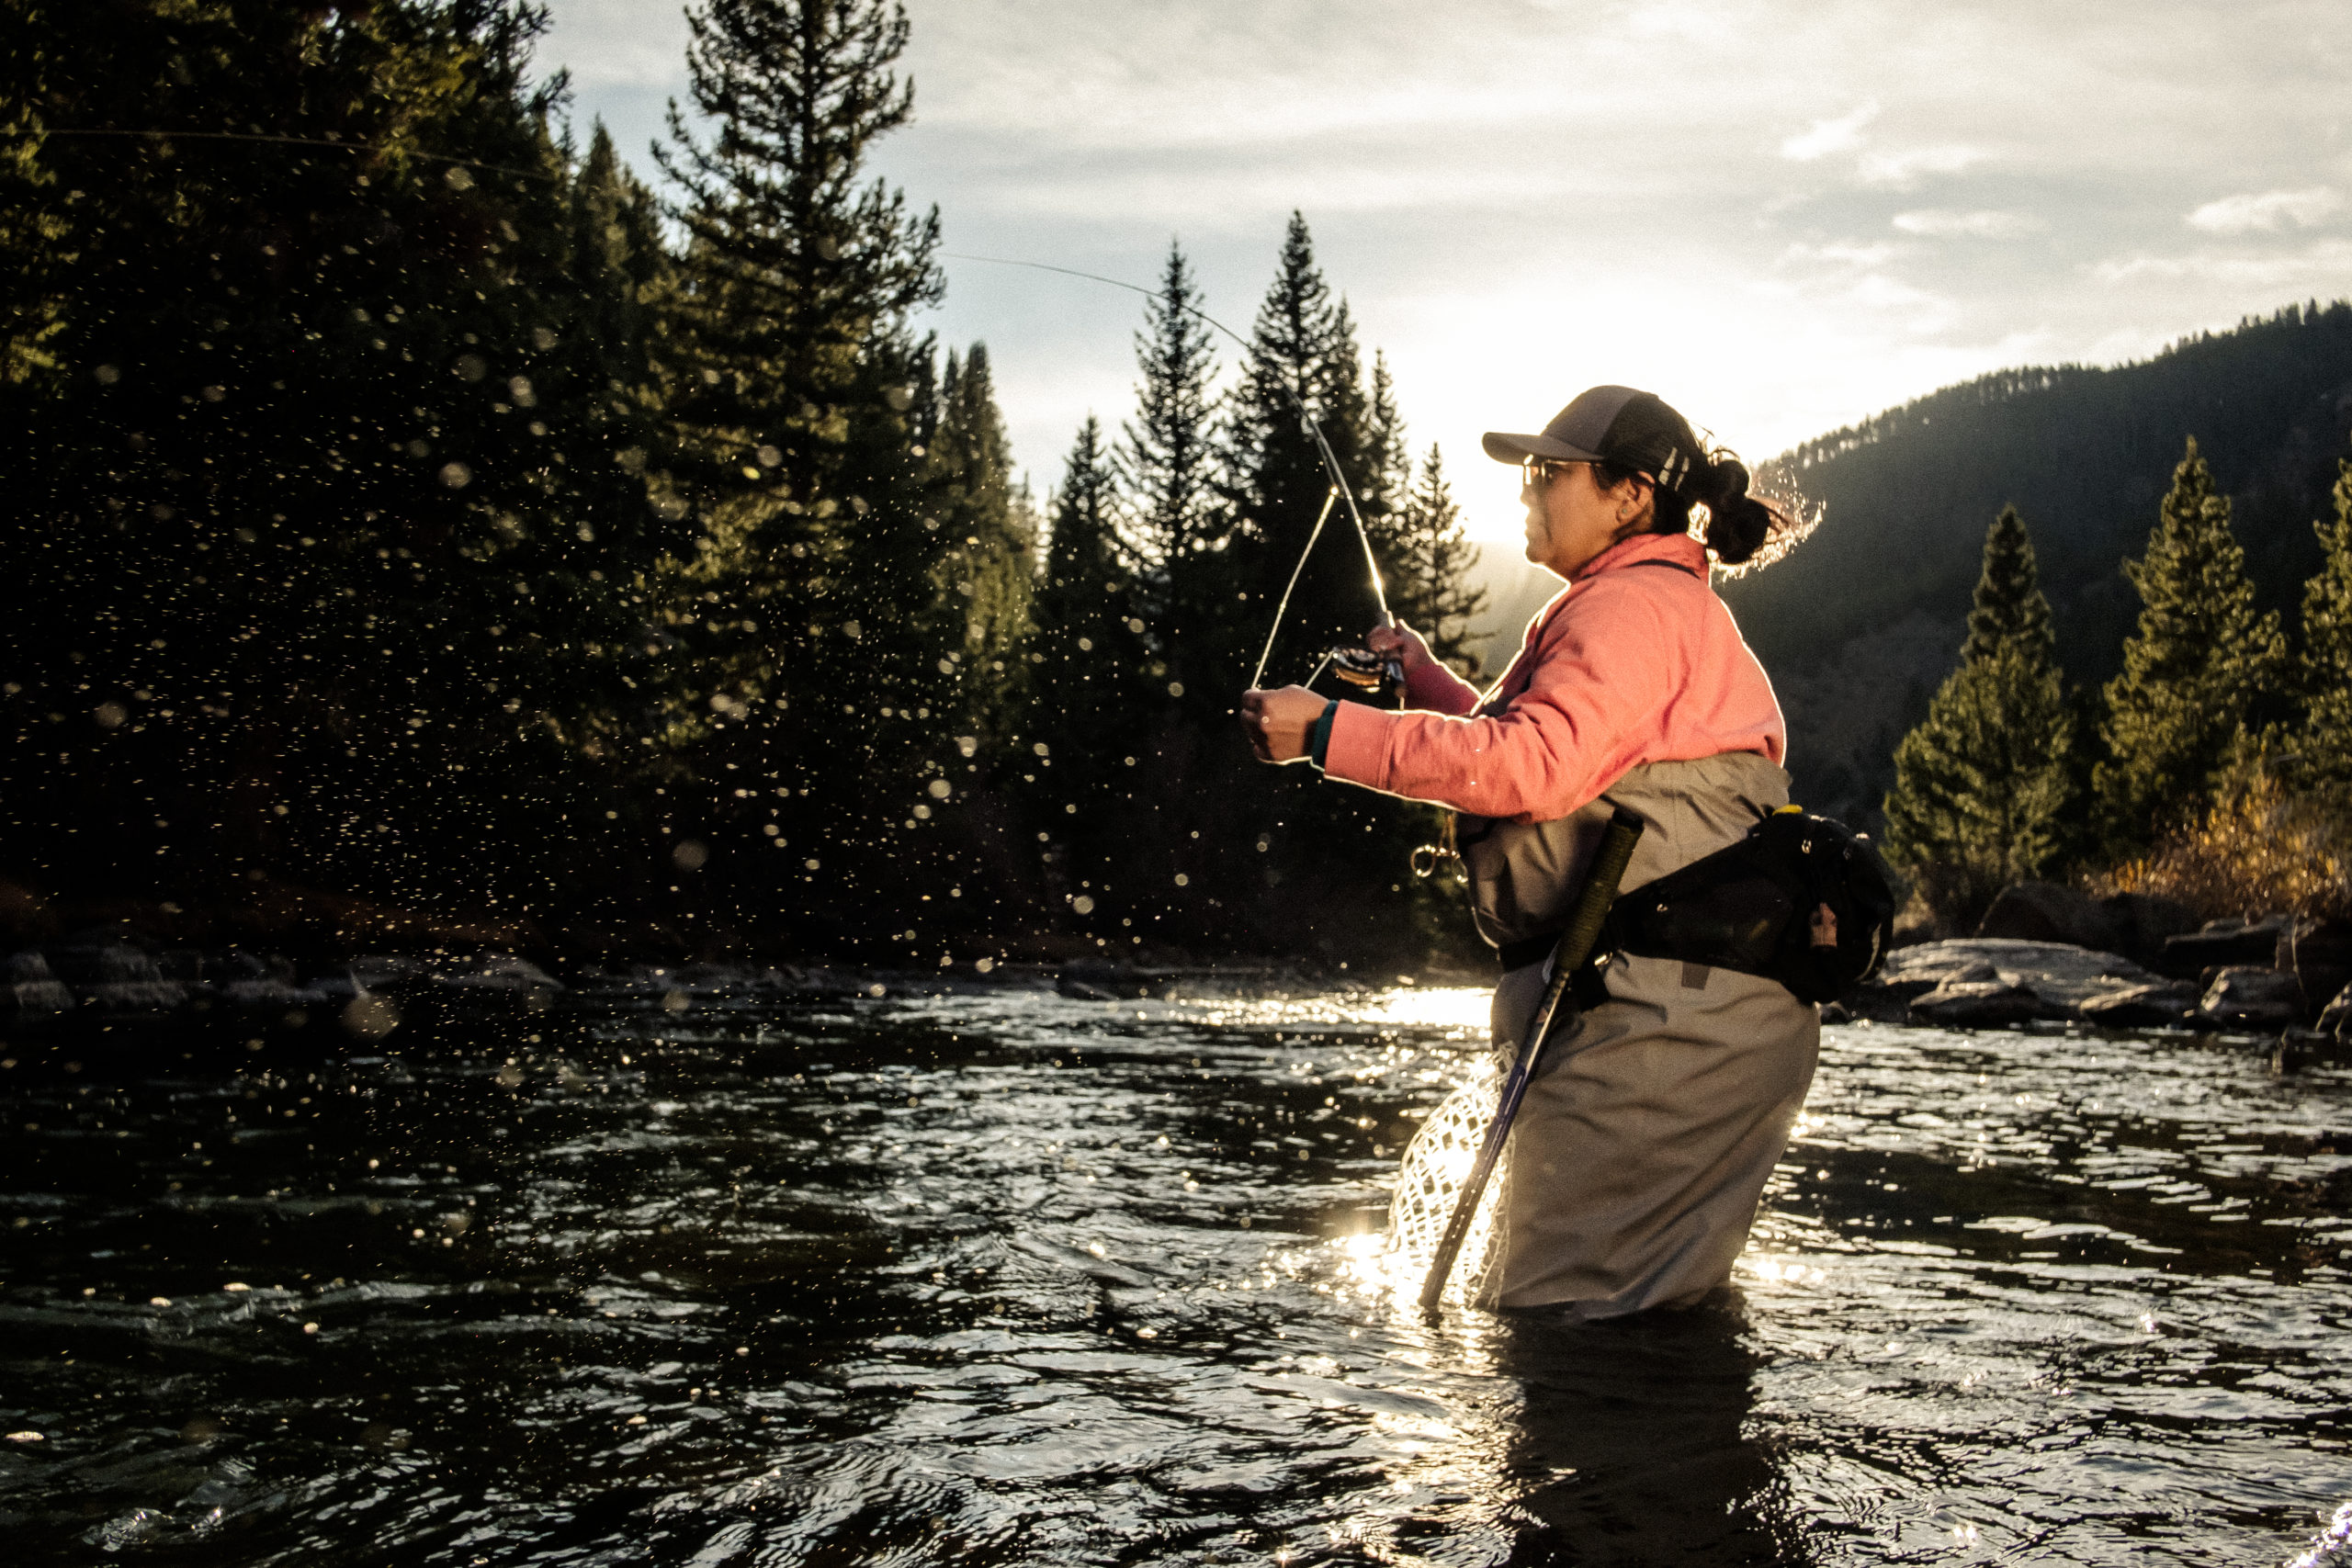 erica nelson fly fishing photo by ryan duclos